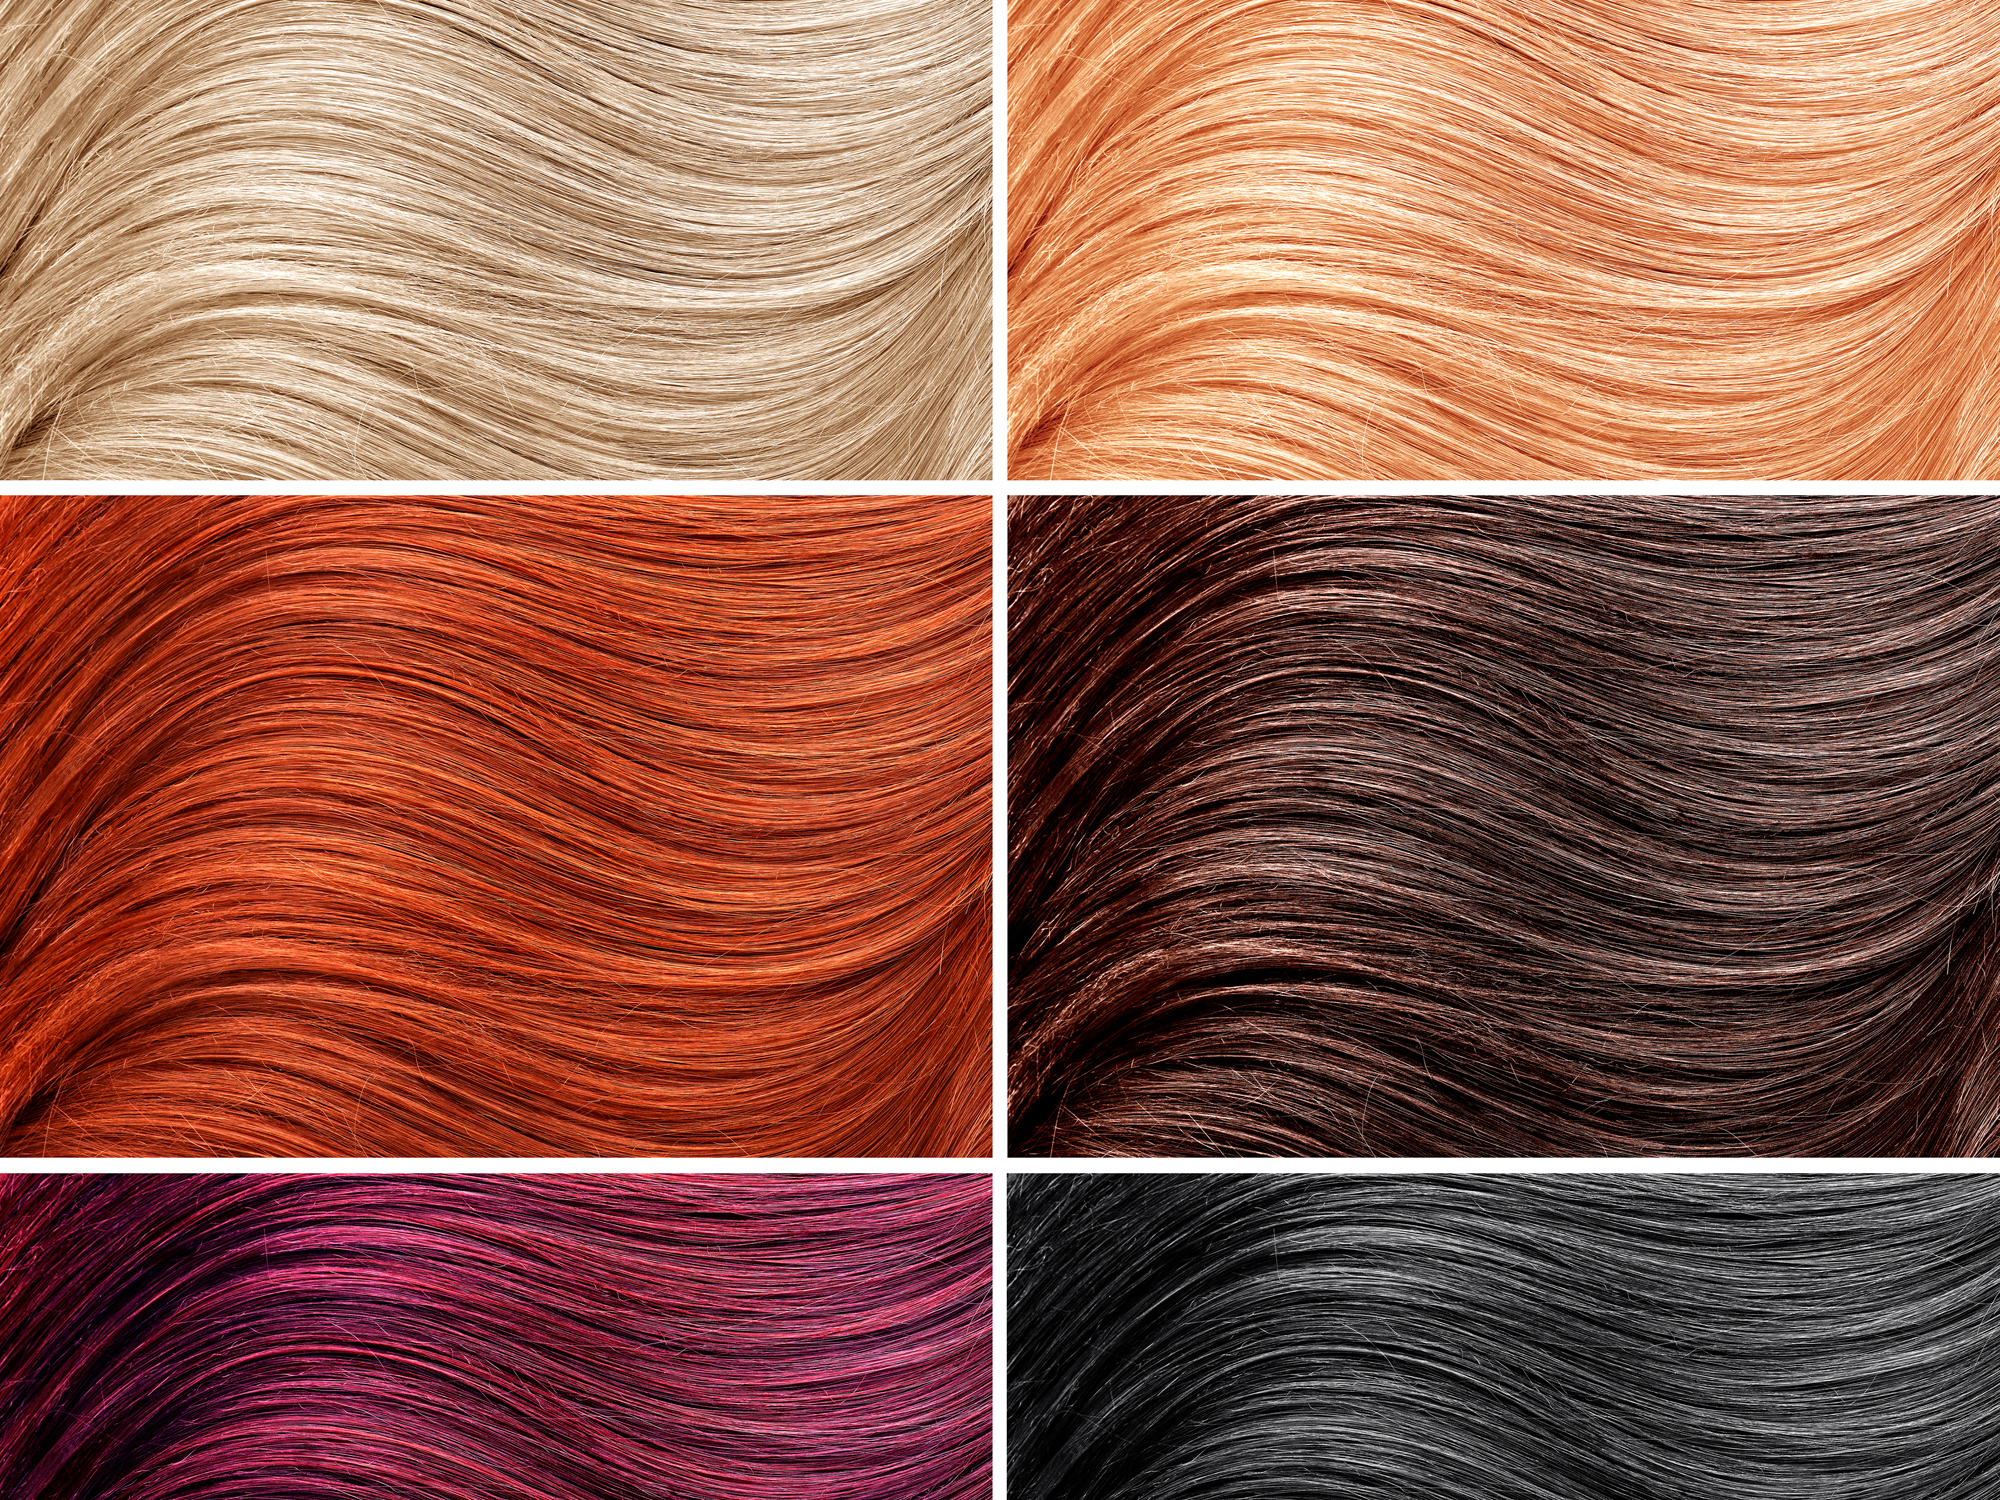 Does coloring your hair cause cancer?